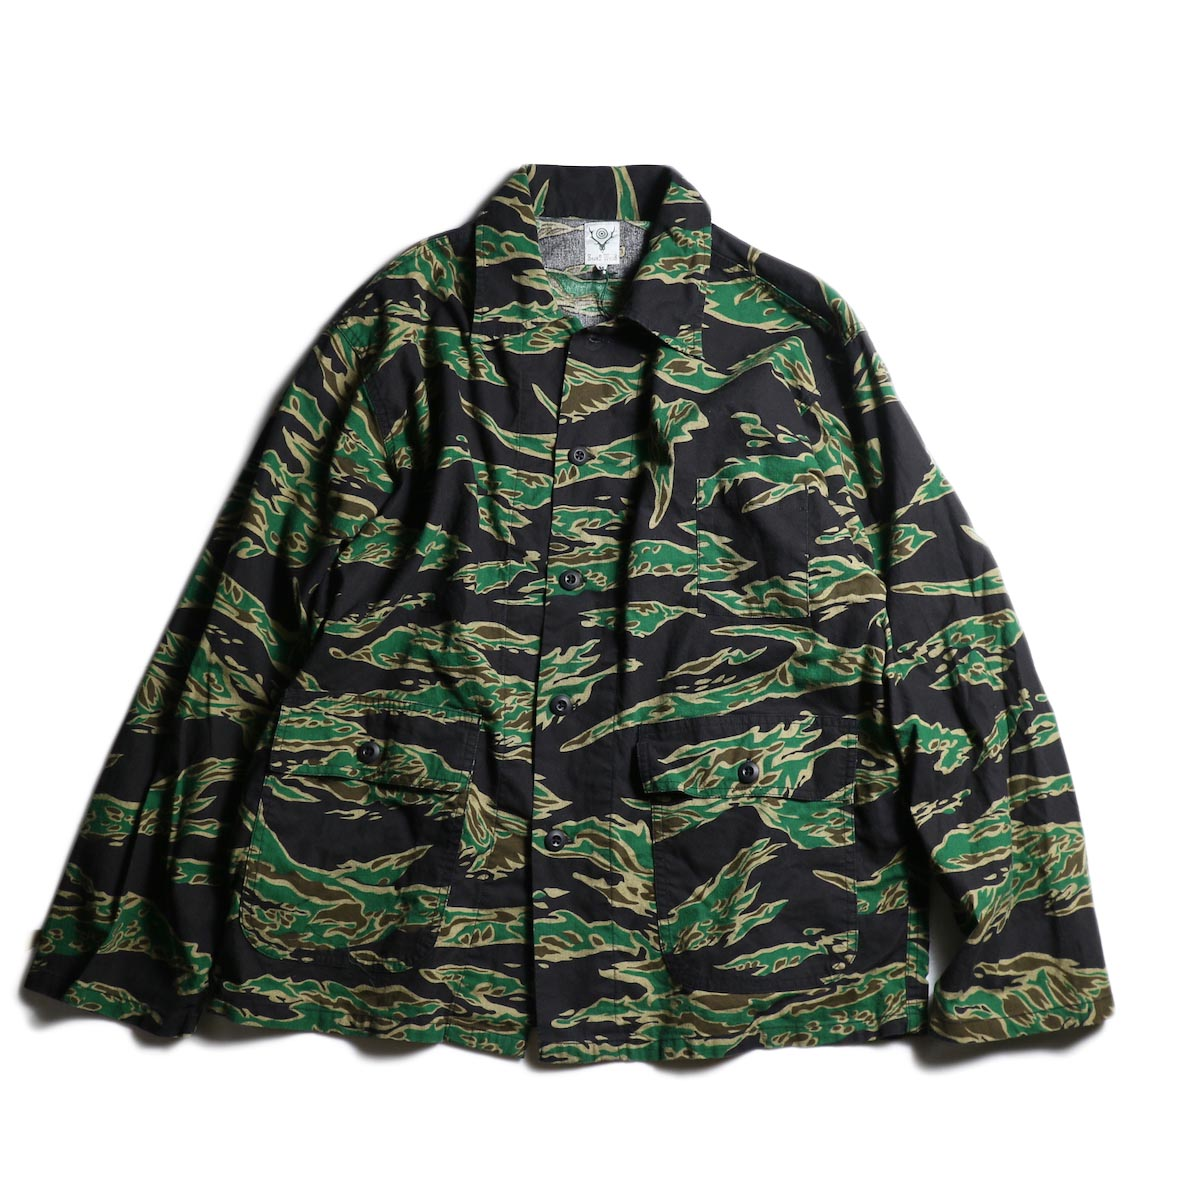 SOUTH2 WEST8 / Hunting Shirt - Printed Flannel / Camouflage (Tiger)